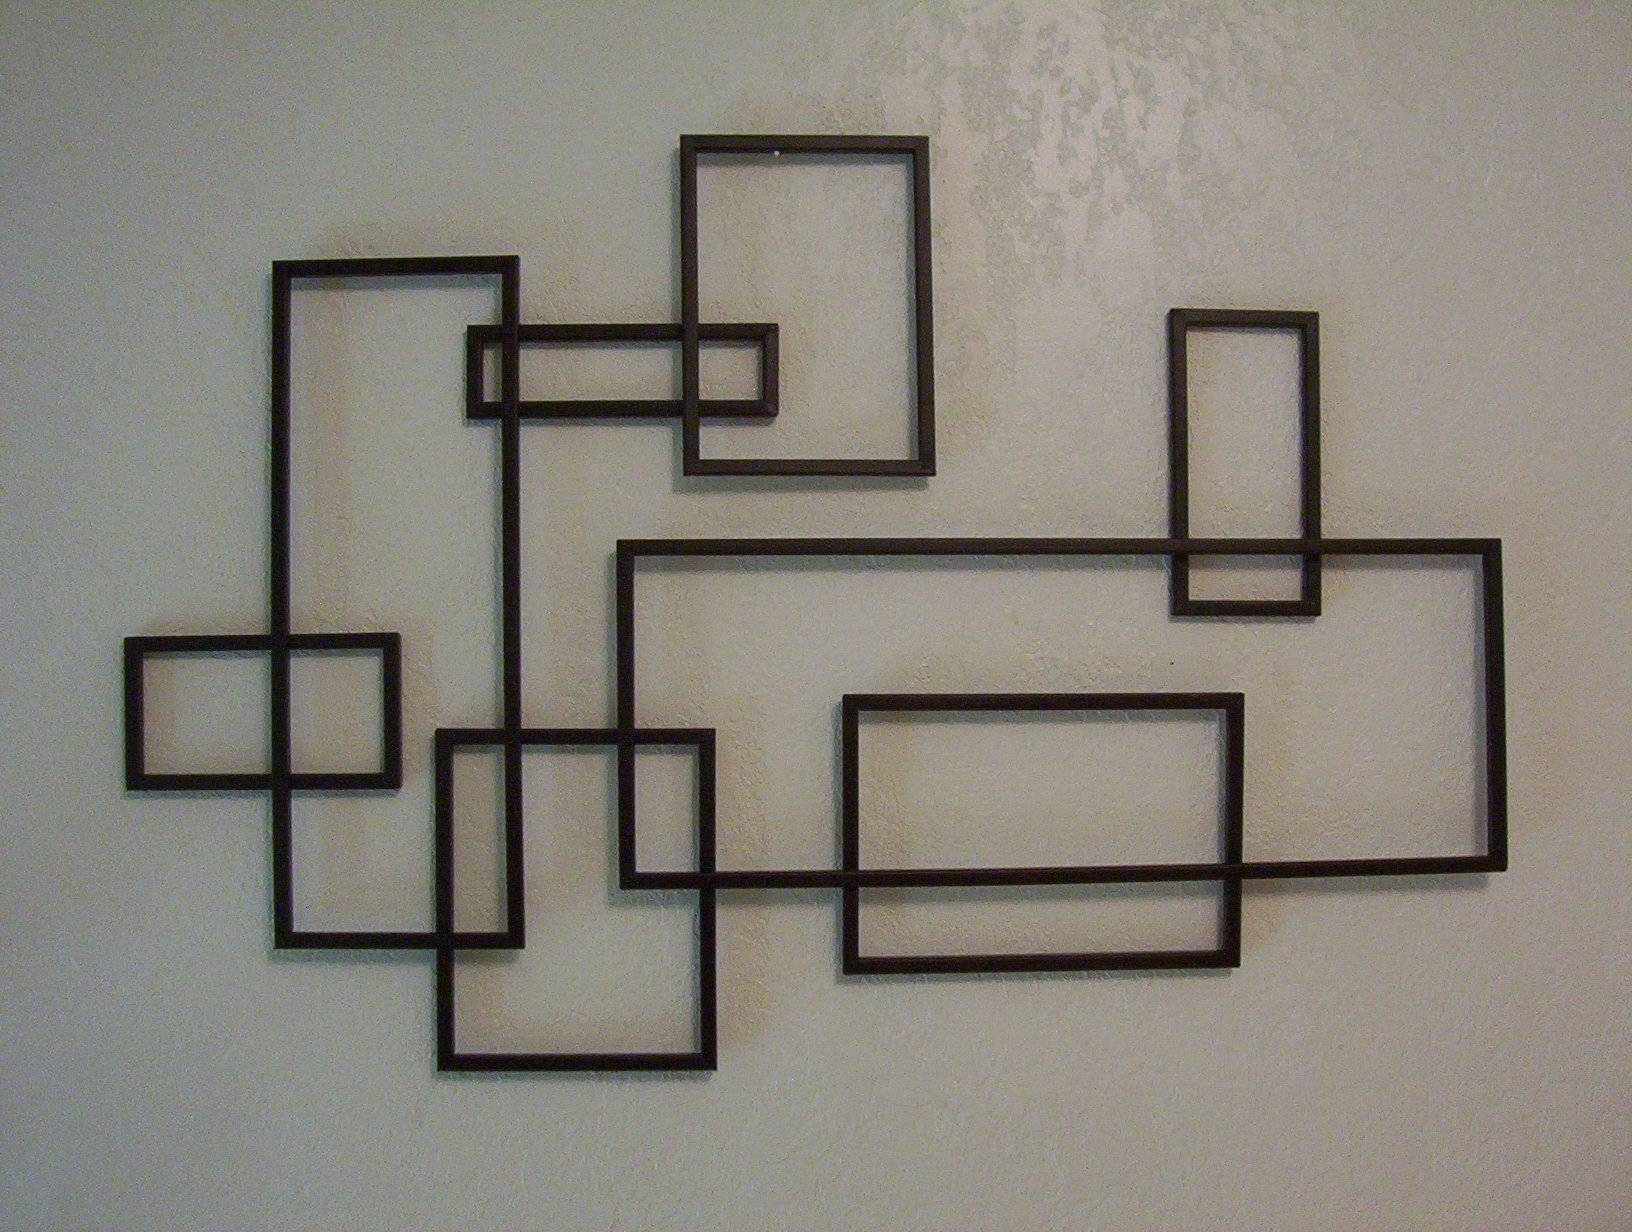 Wall Art Designs: Black Metal Wall Art Mid Century Modern De Stijl Intended For Newest Black Metal Wall Art Decor (View 14 of 20)